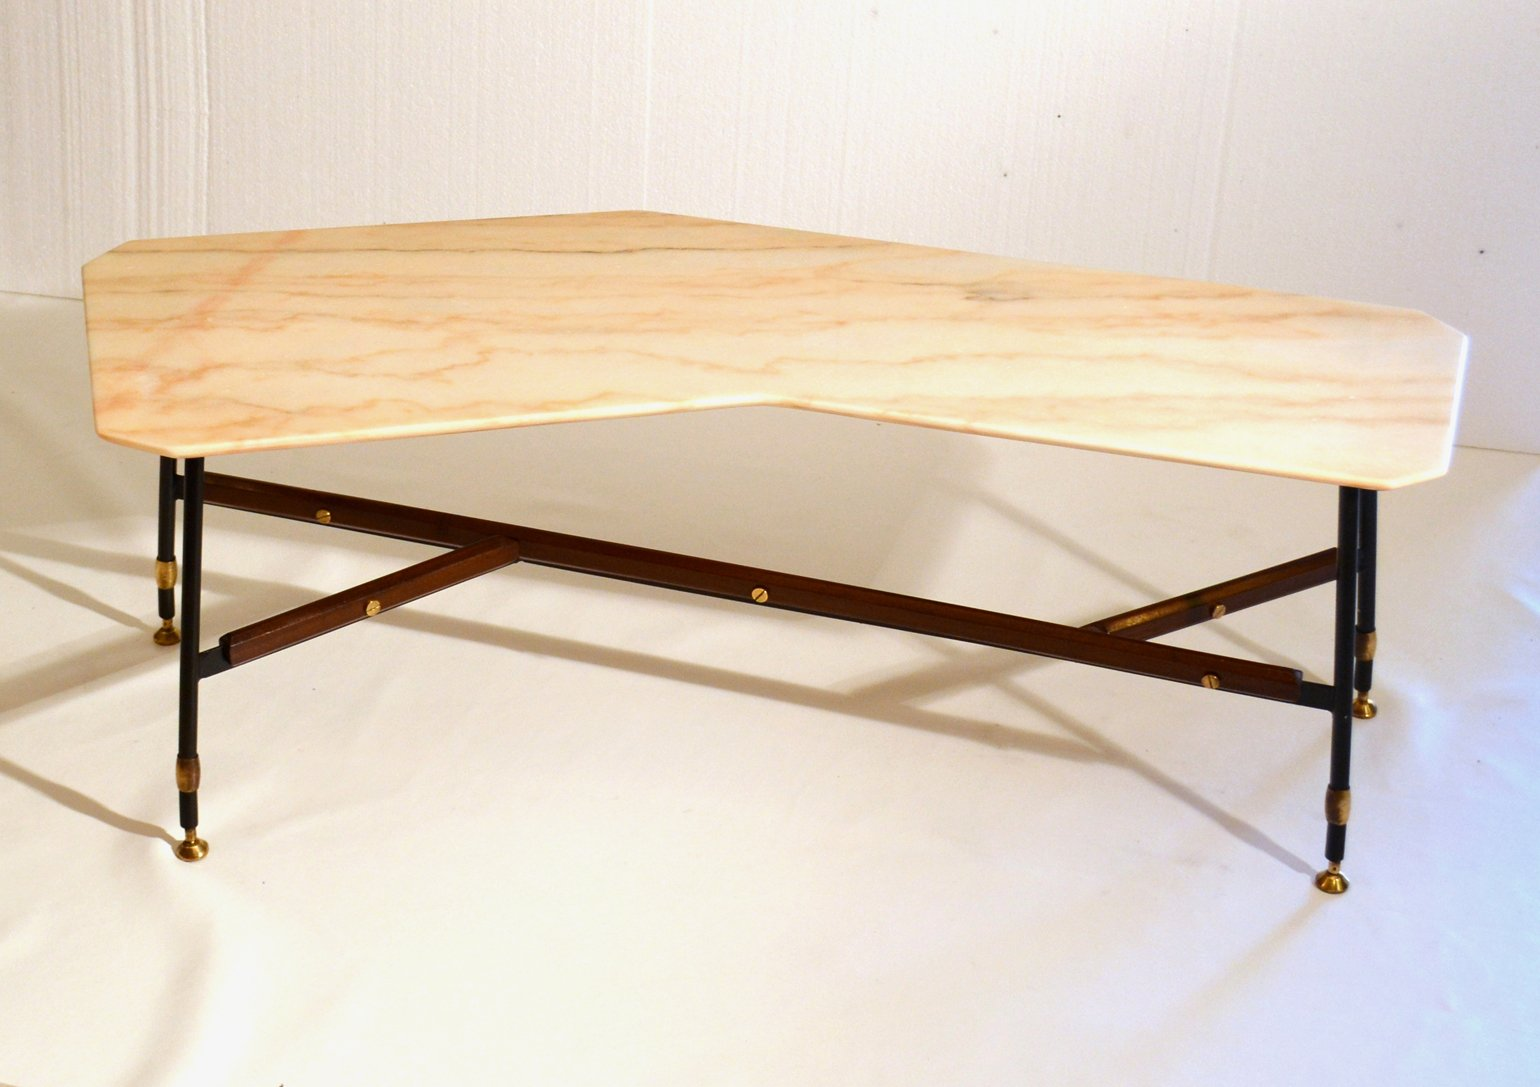 Italian Free Formed Marble Top Coffee Table 1950s For Sale At Pamono